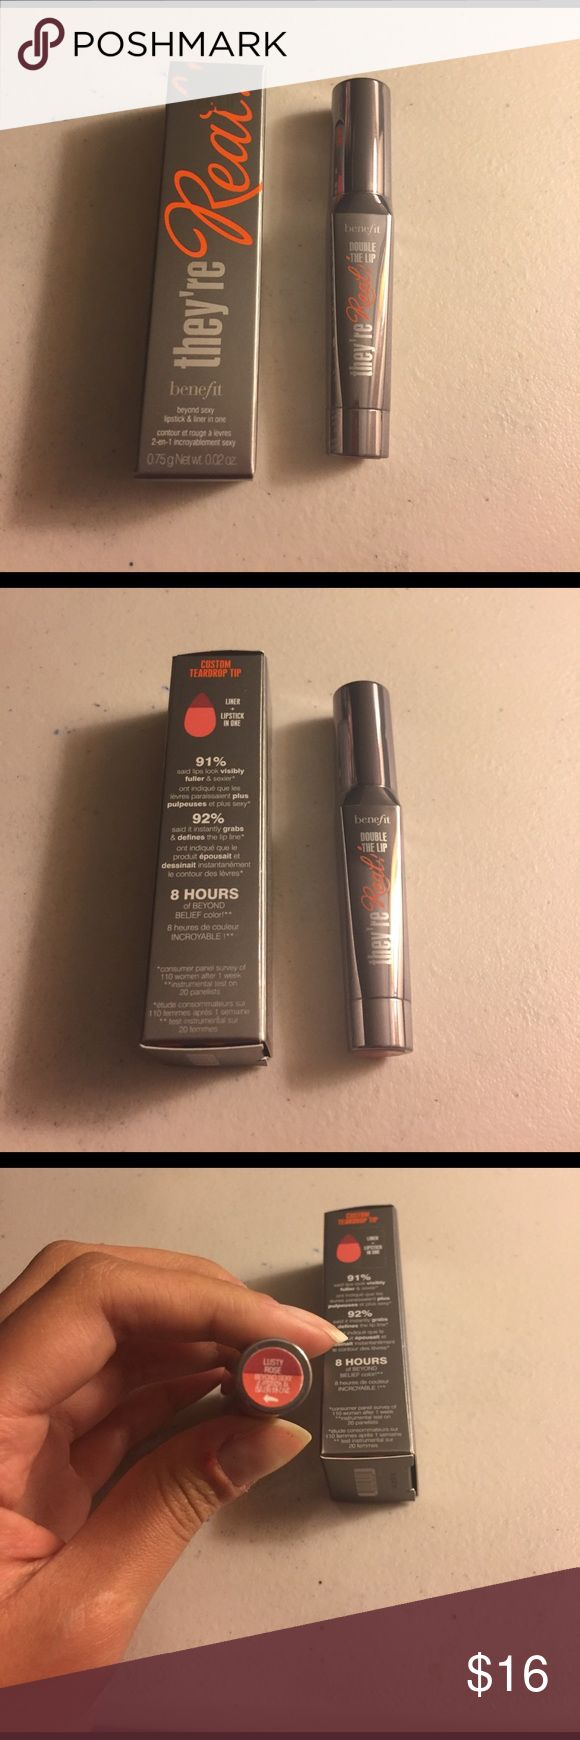 Sale  Benefit lusty rose lipstick liner in one Color lusty rose. Benefit lipstick and liner in one. Brand new. Never been used never been swatched. On sale for 5 days Sephora Makeup Lipstick